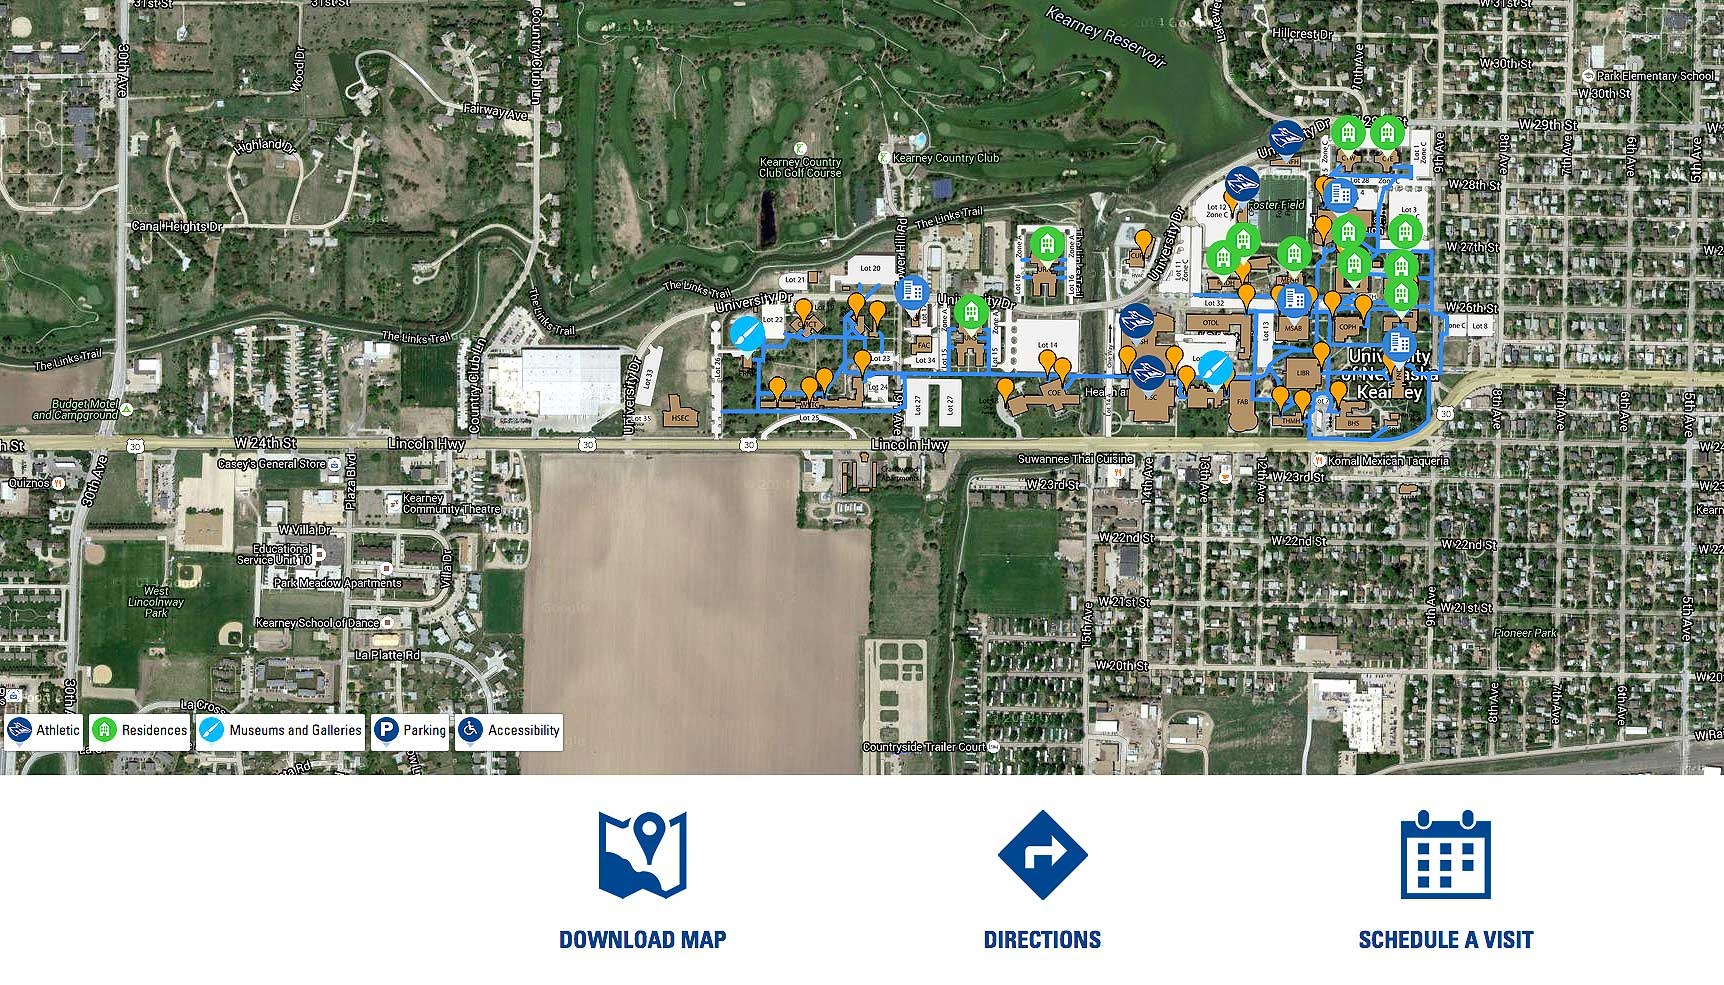 LIVE NOW: New interactive campus map